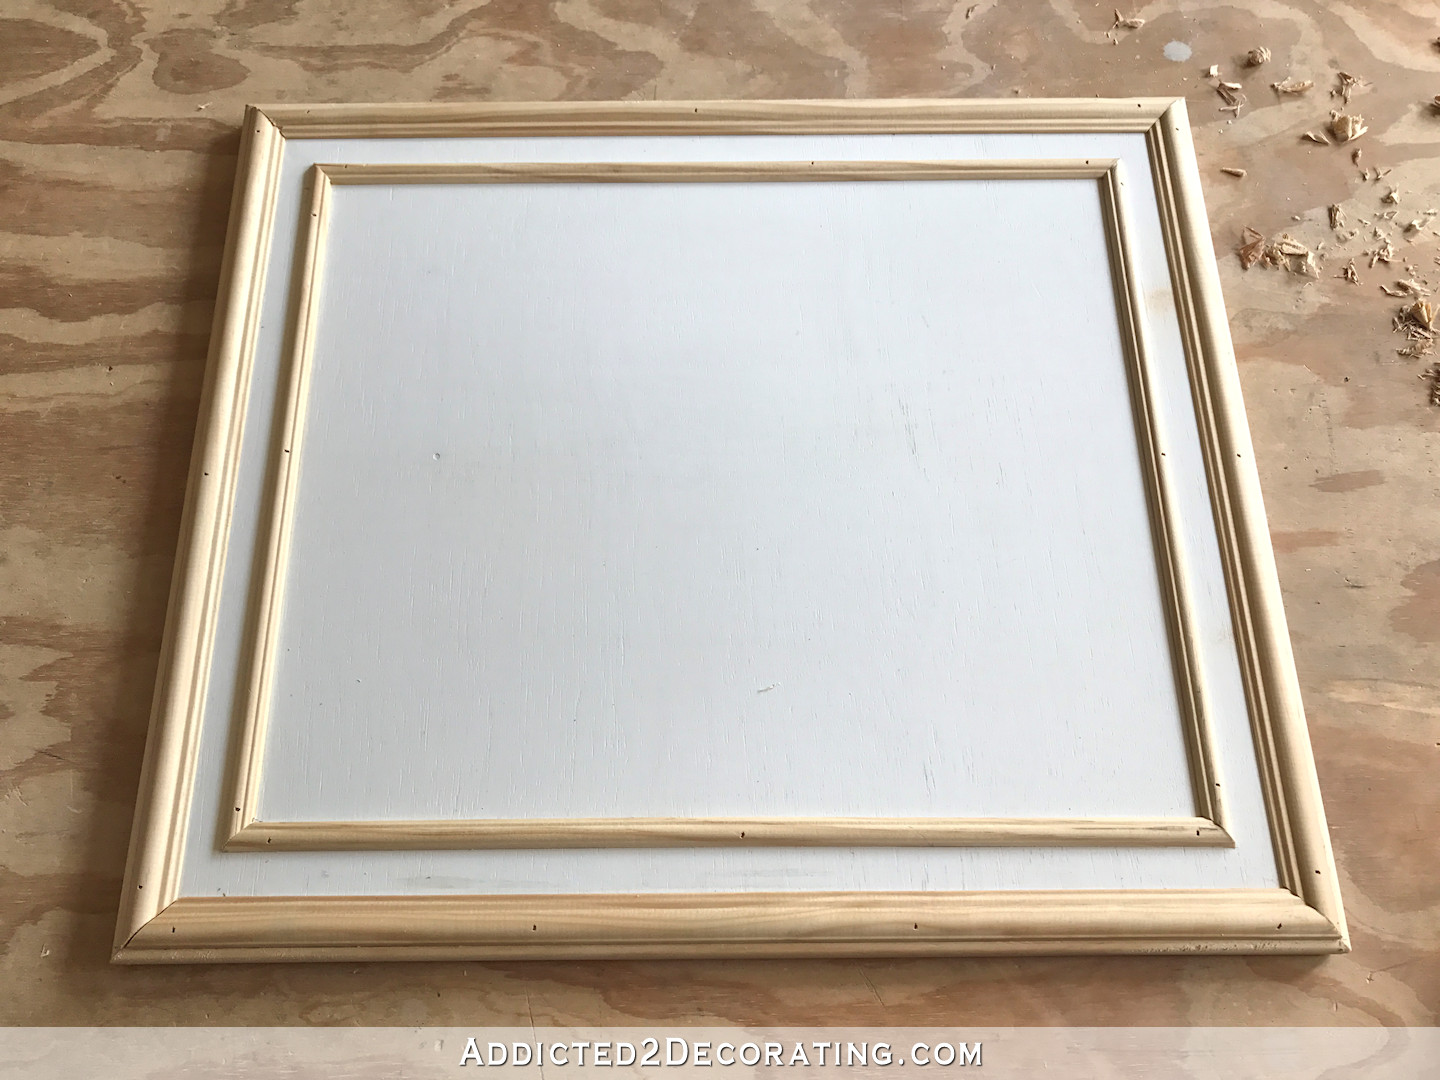 Best ideas about DIY Cabinet Doors . Save or Pin Simple DIY Cabinet Doors Make Cabinet Doors With Basic Tools Now.